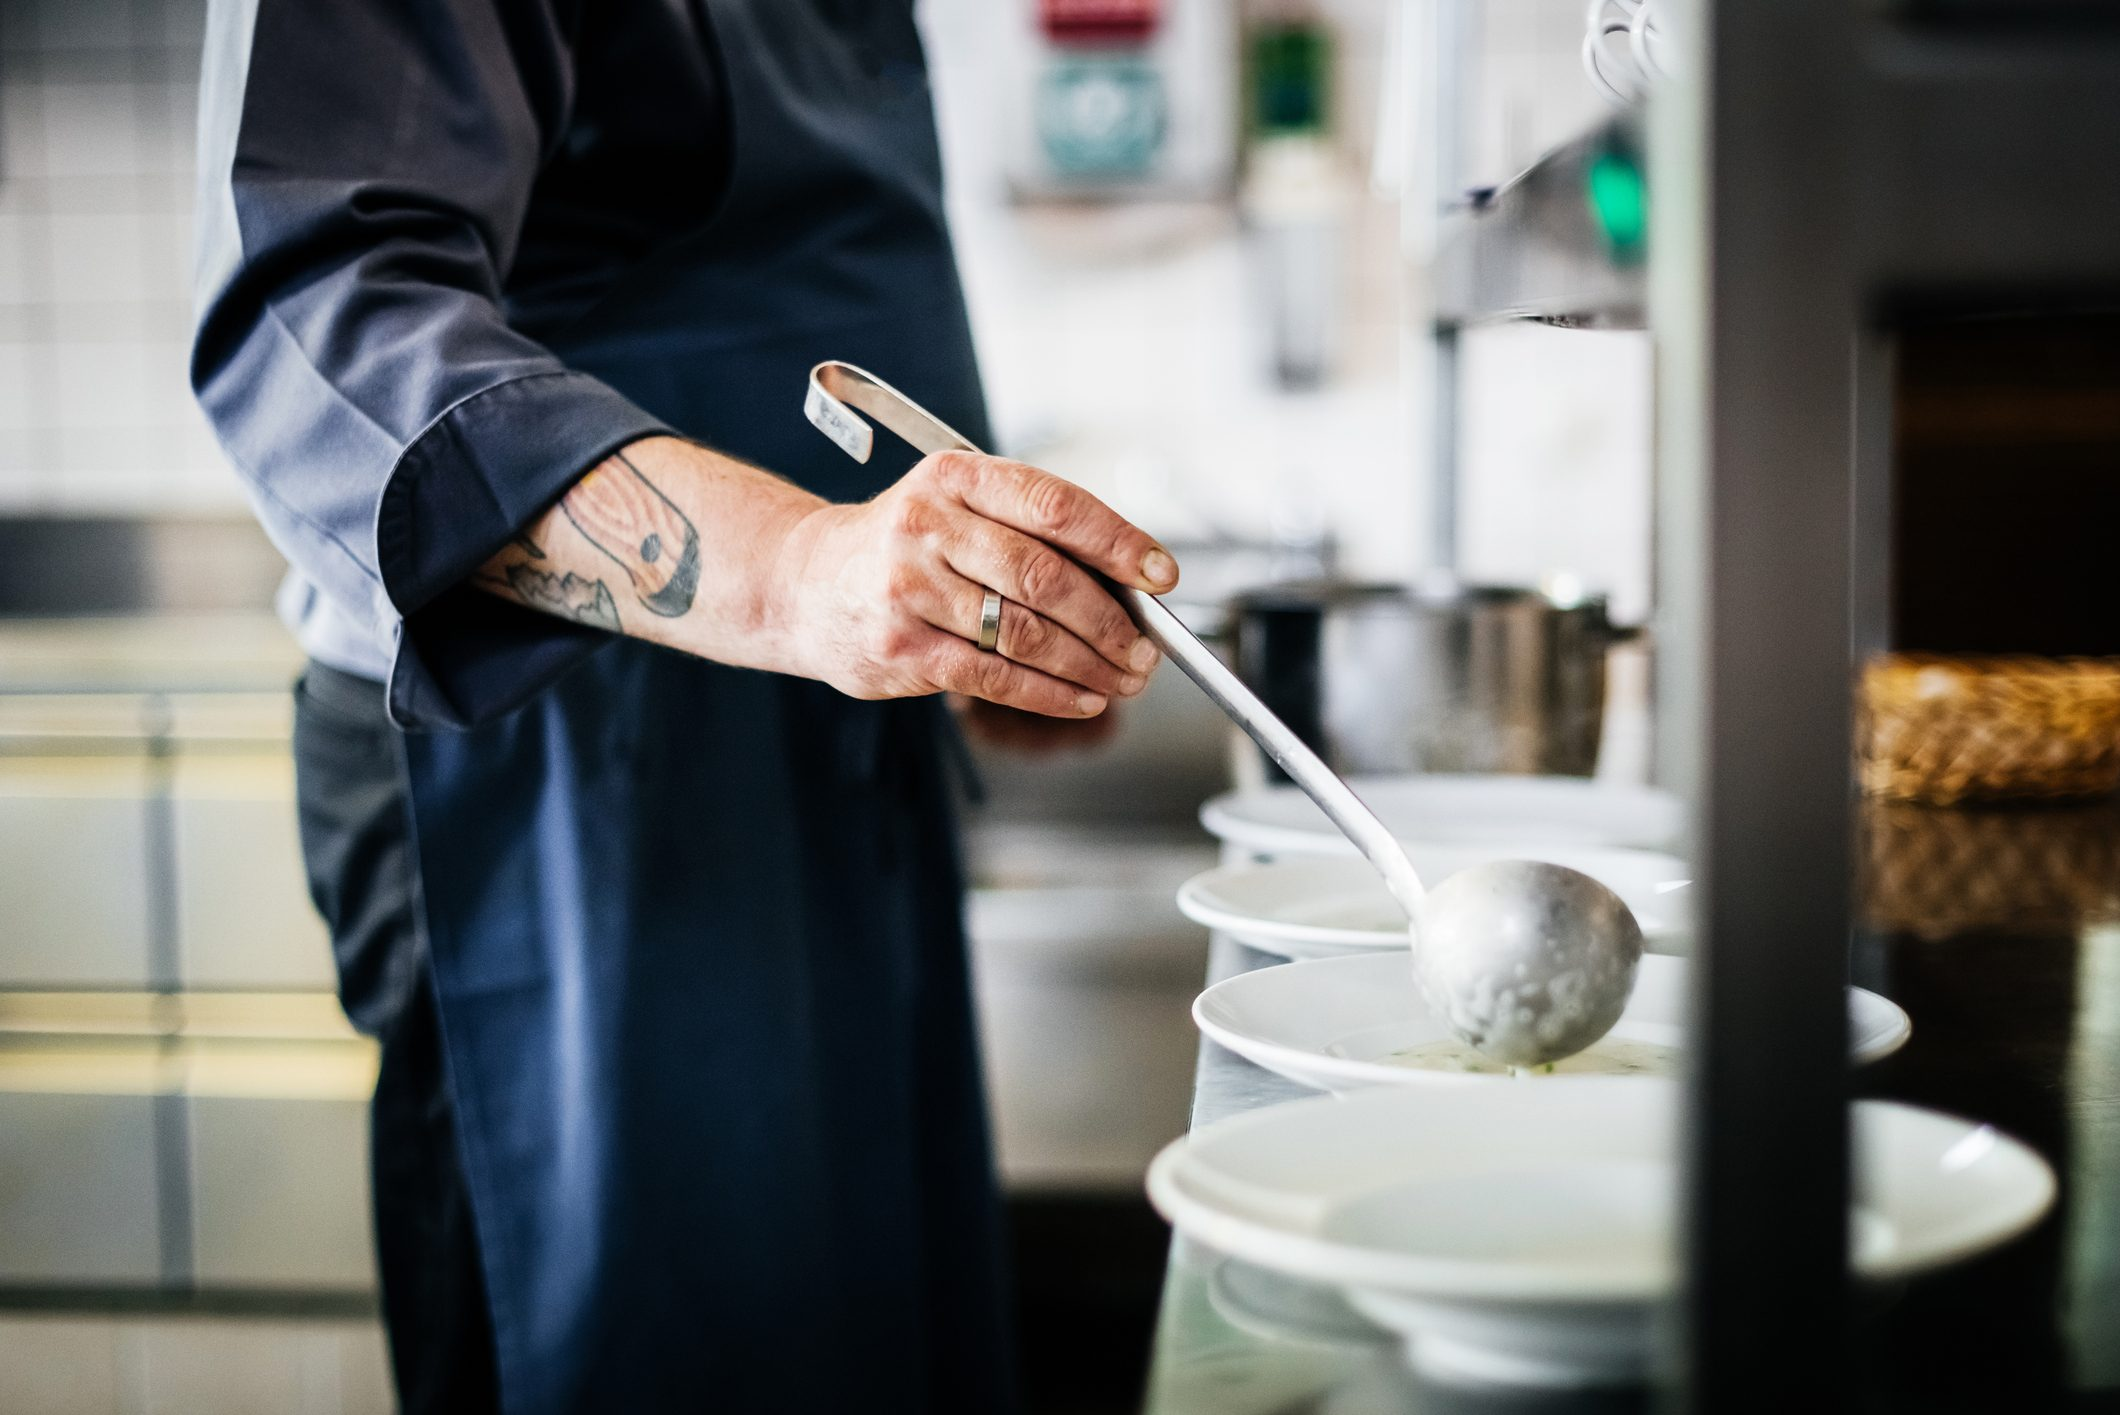 Chef With Tattoos Ladling Soup Into Bowls